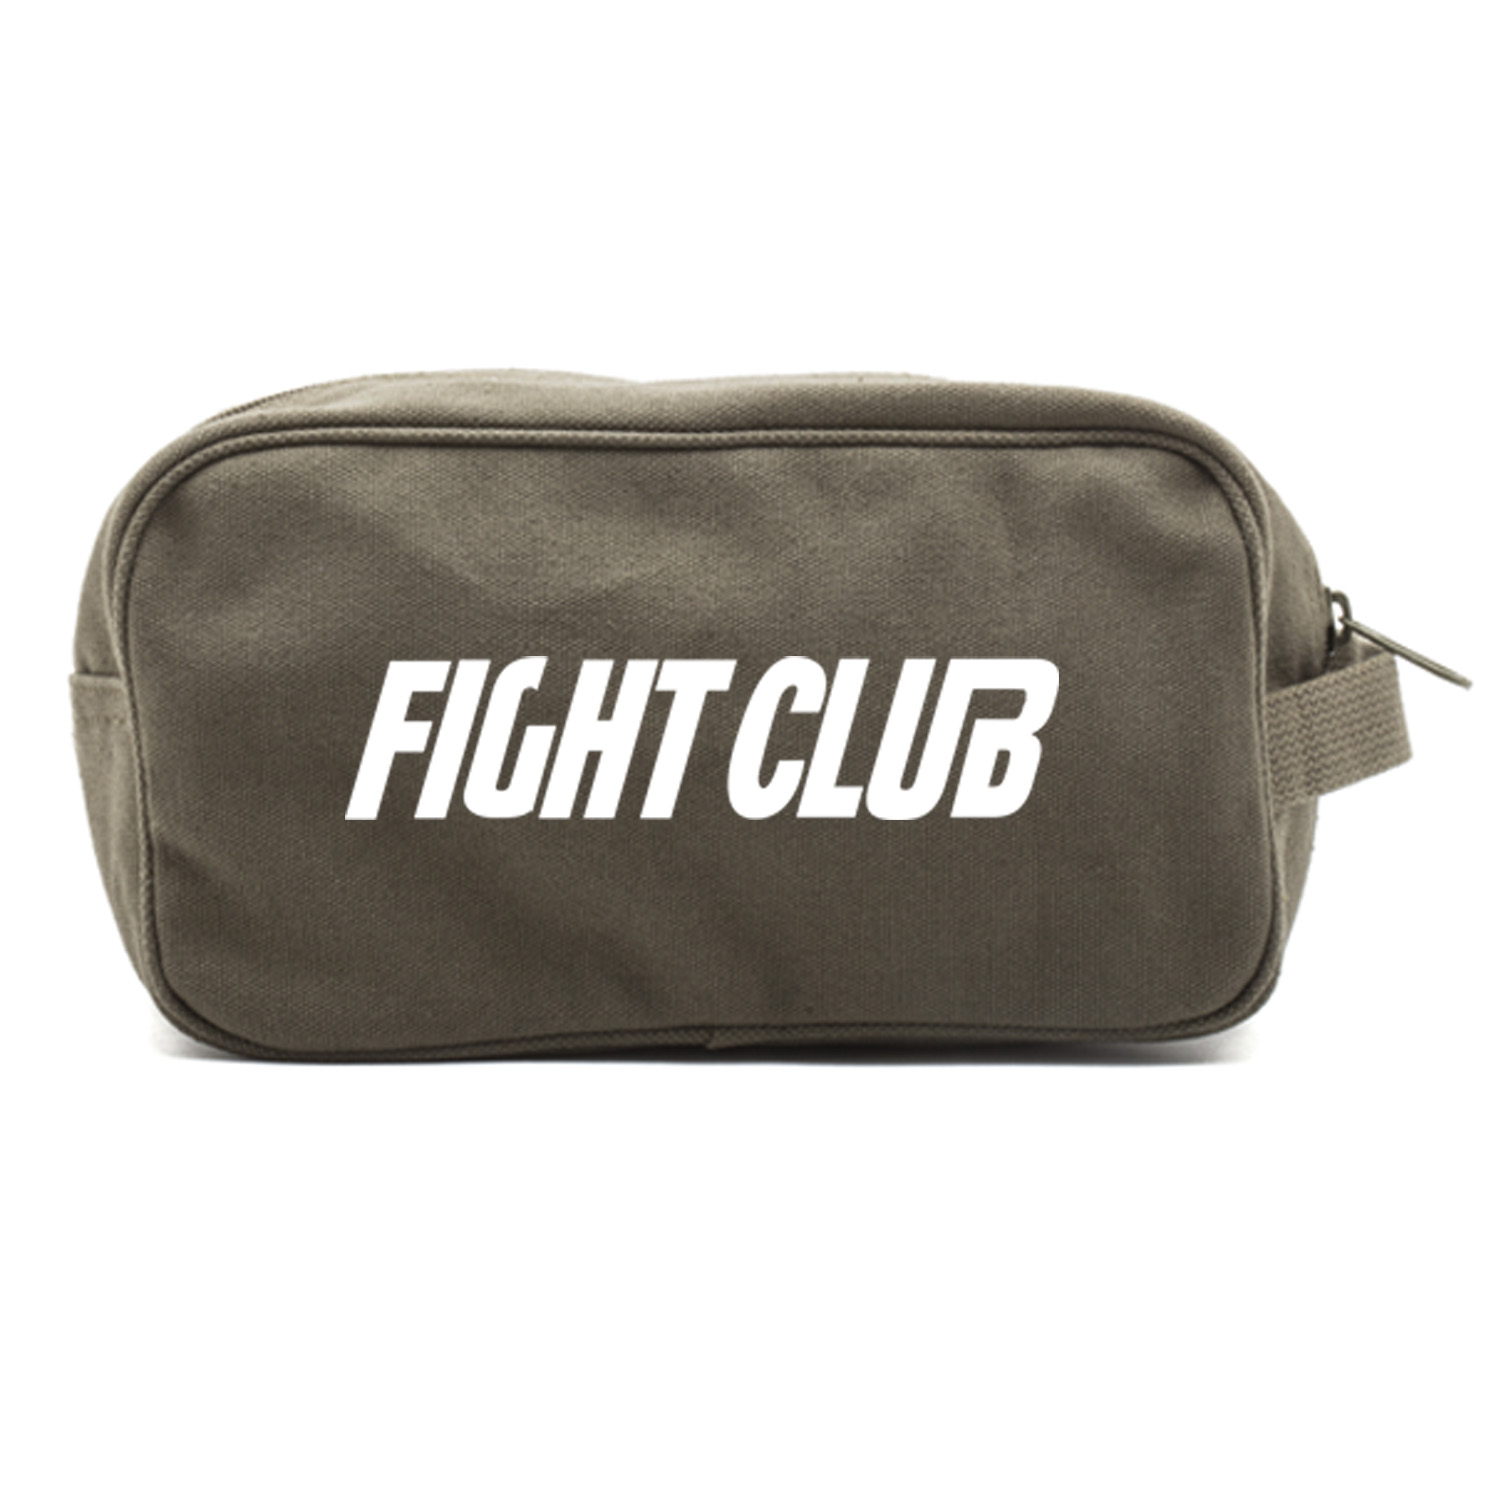 FIGHT CLUB Fighting Boxing Dual Two Compartment Travel Toiletry Dopp Kit Bag